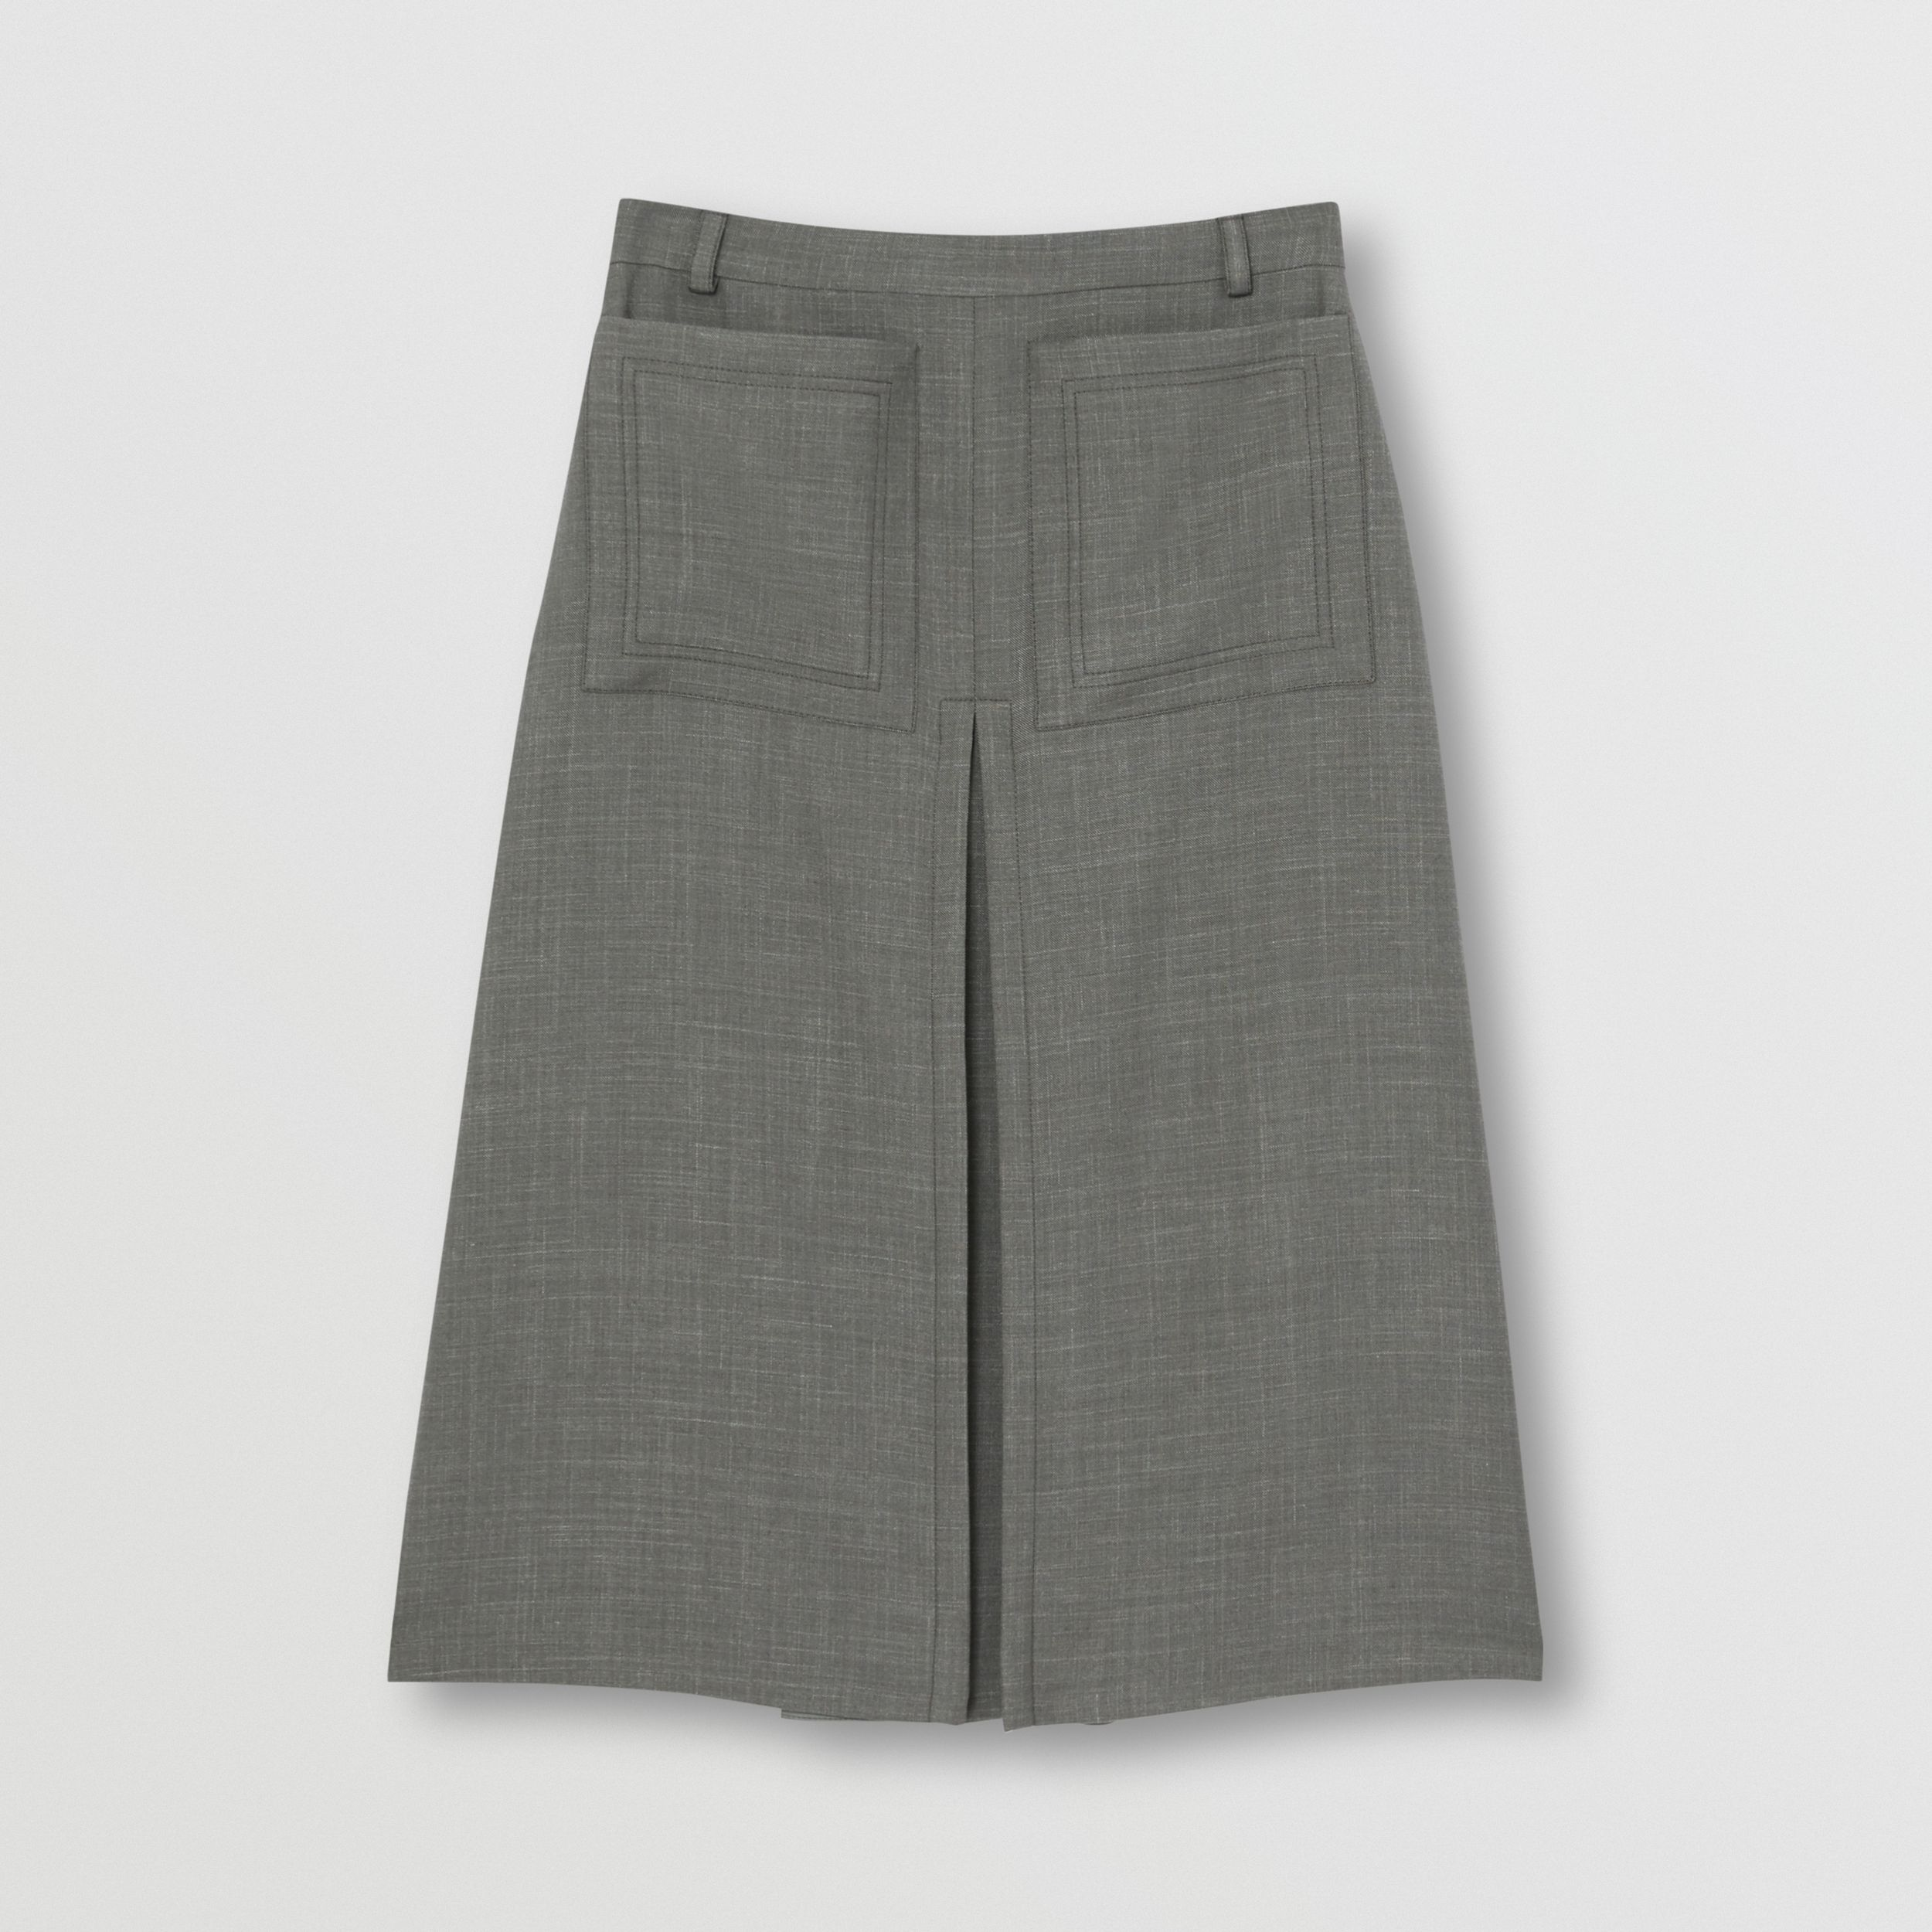 Box-pleat Detail Wool Silk Blend A-line Skirt in Charcoal Grey - Women | Burberry - 4